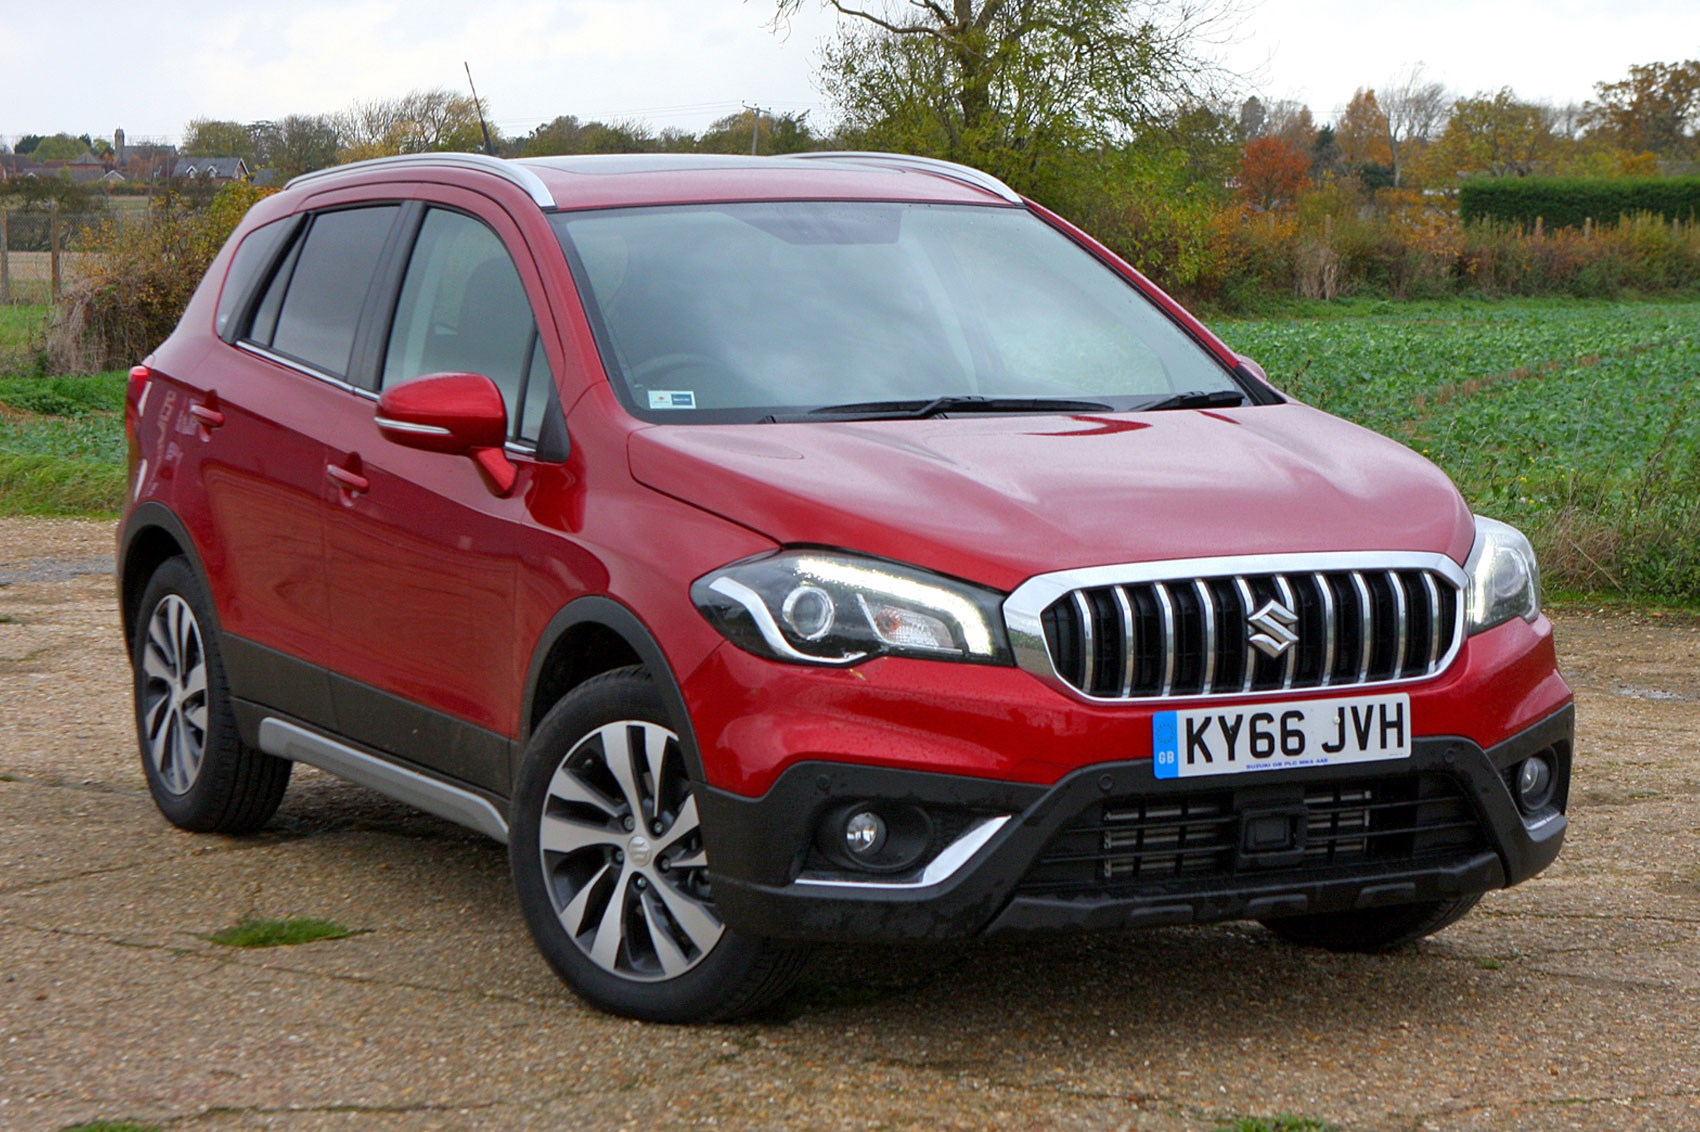 Mercedes Benz Lease >> Suzuki SX4 S-Cross 1.4 Boosterjet SZ5 Allgrip (2016) review by CAR Magazine